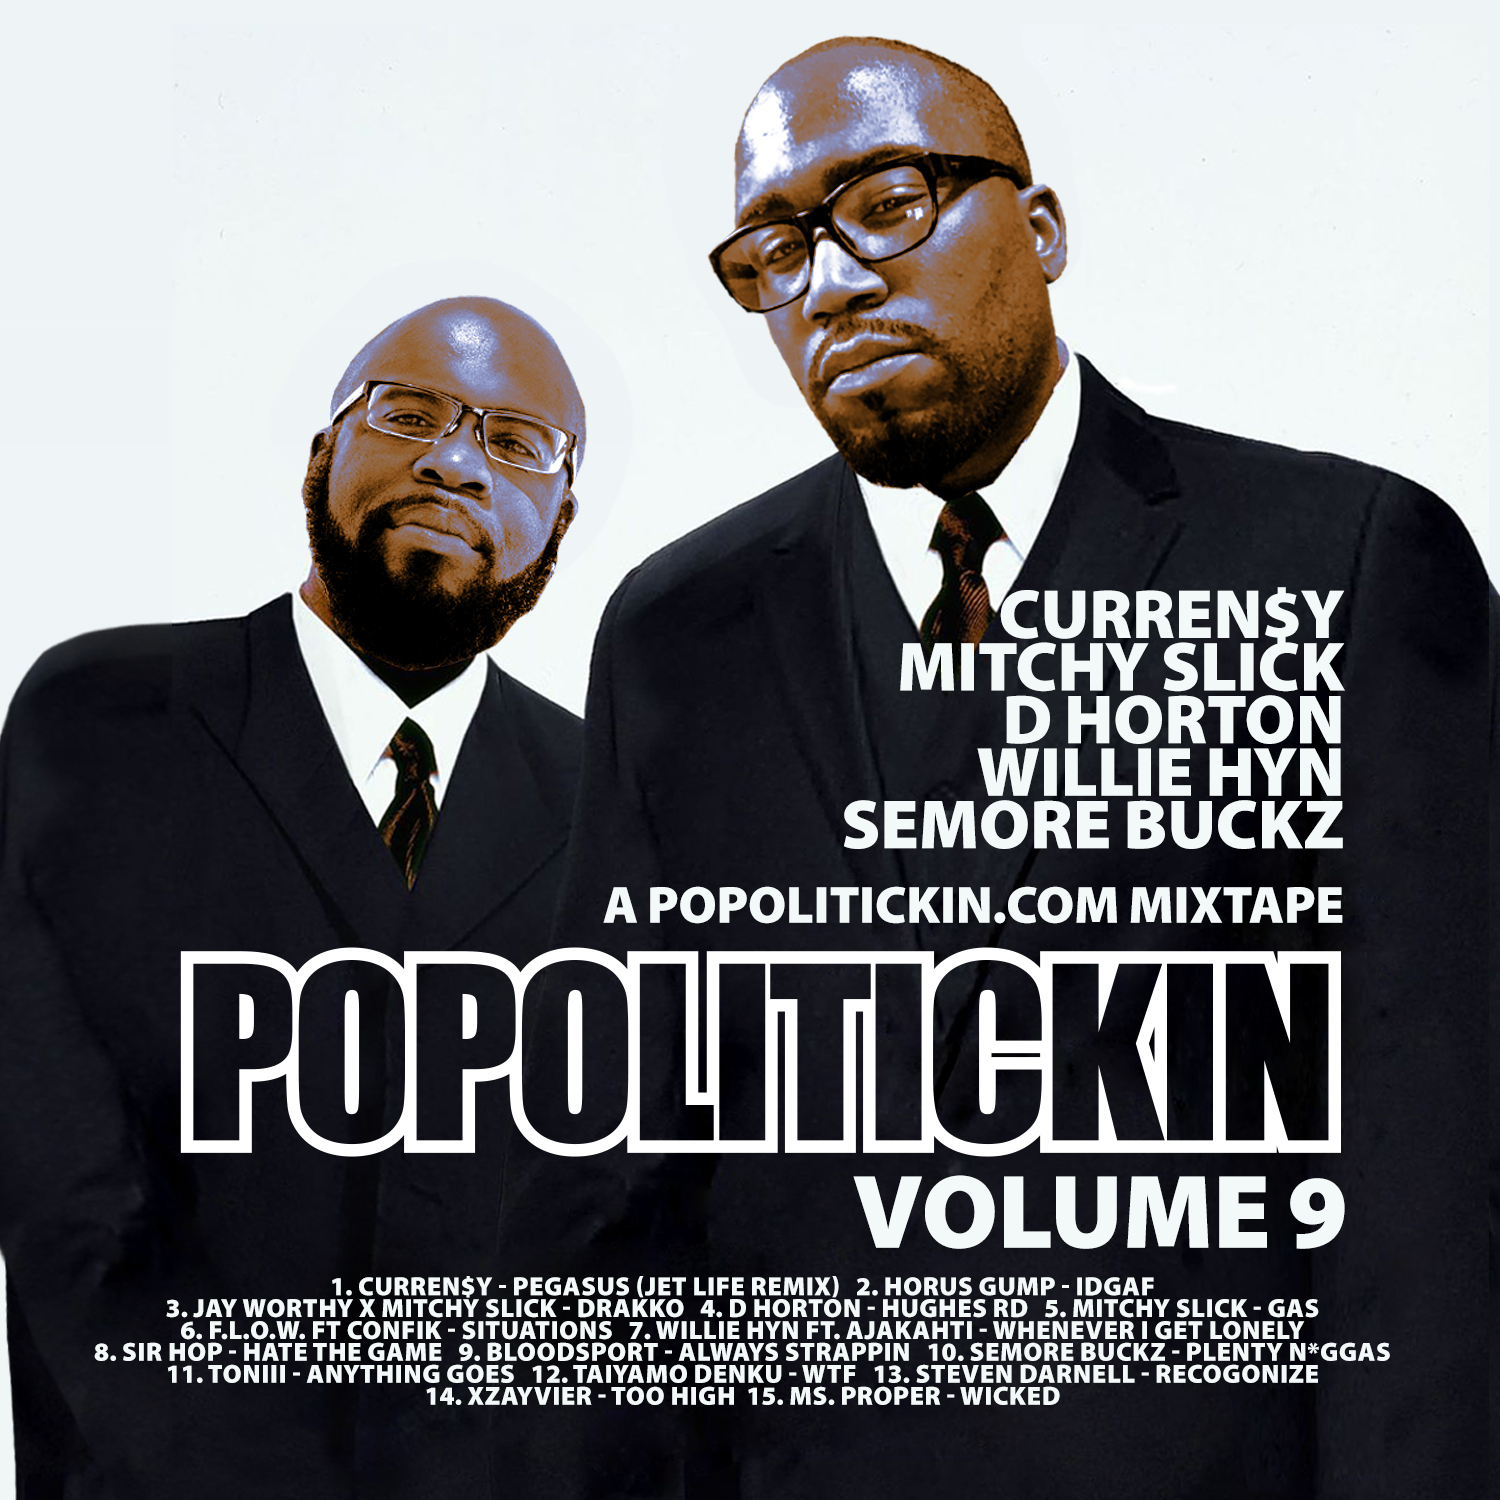 PoPoltiickin The Mixtape Volume 9